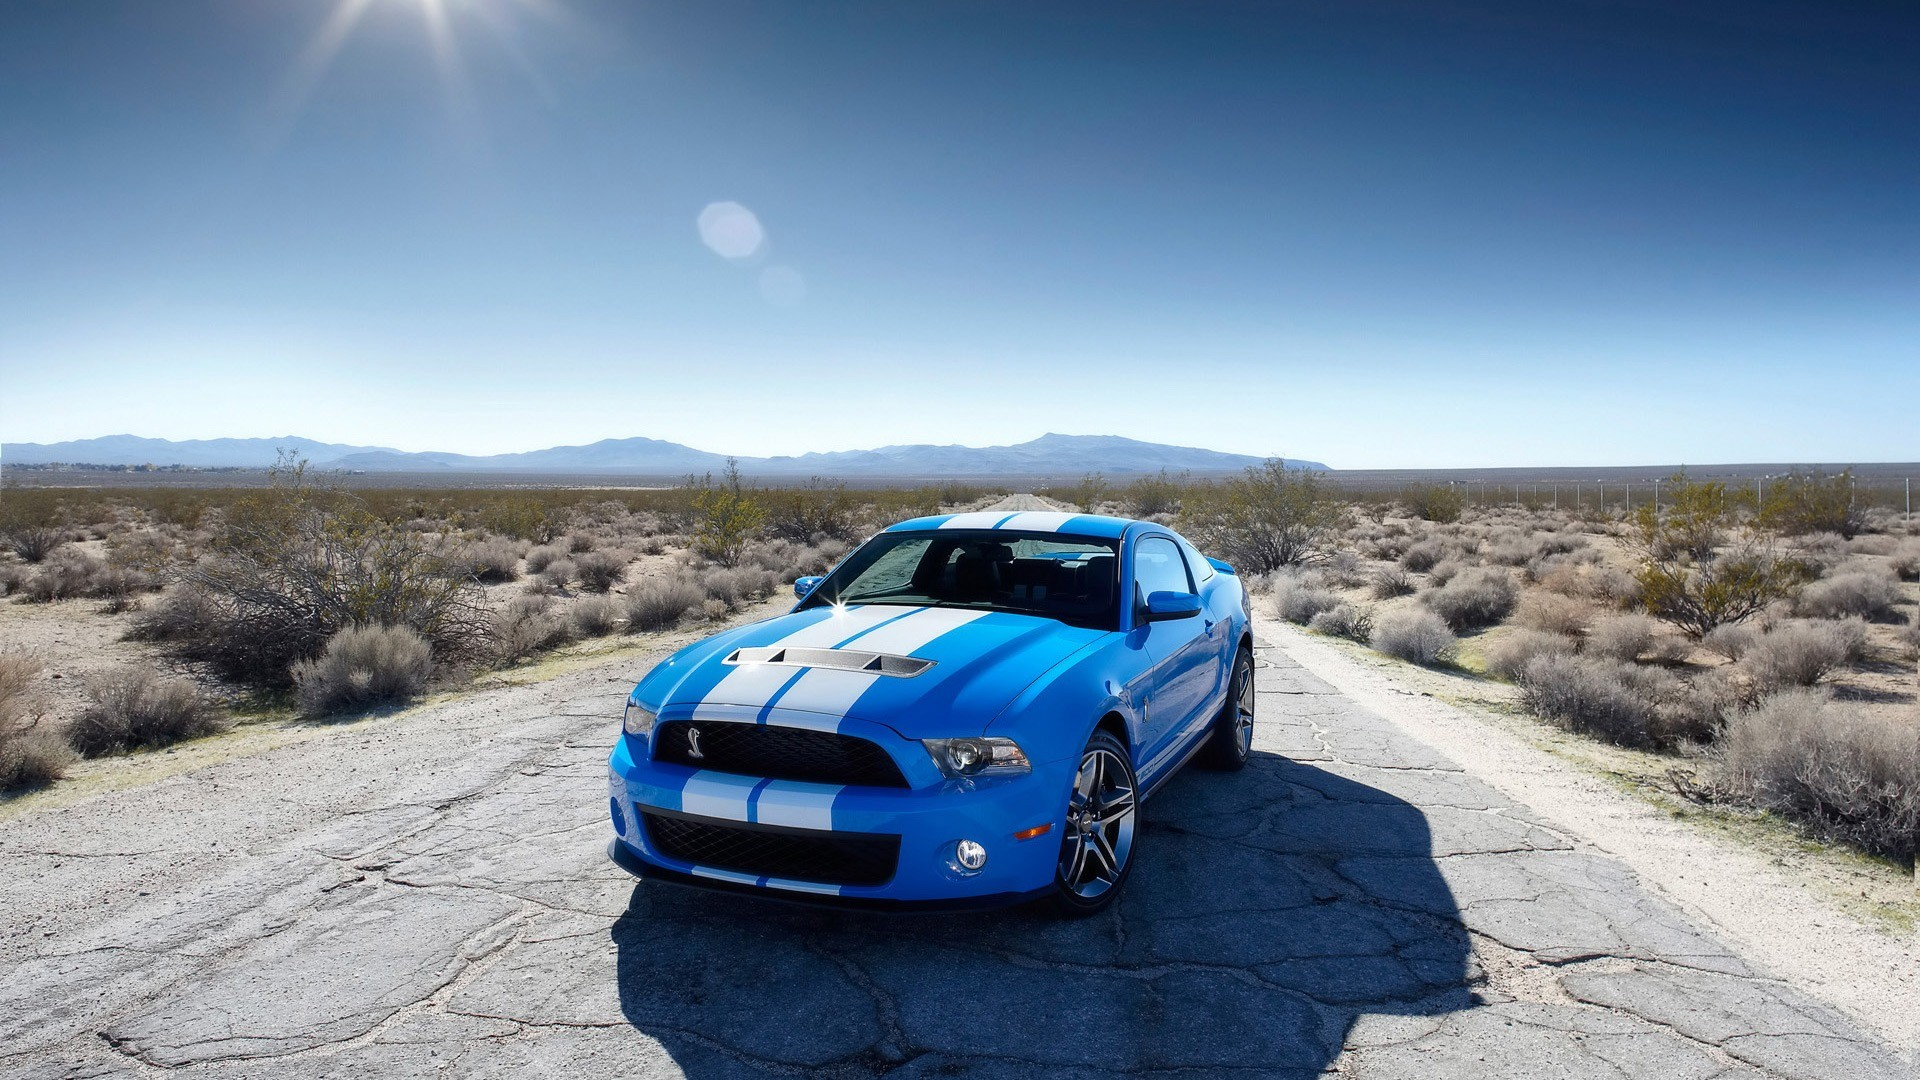 Cool Ford Mustang Sports Cars HD Wallpaper of Car 1920x1080